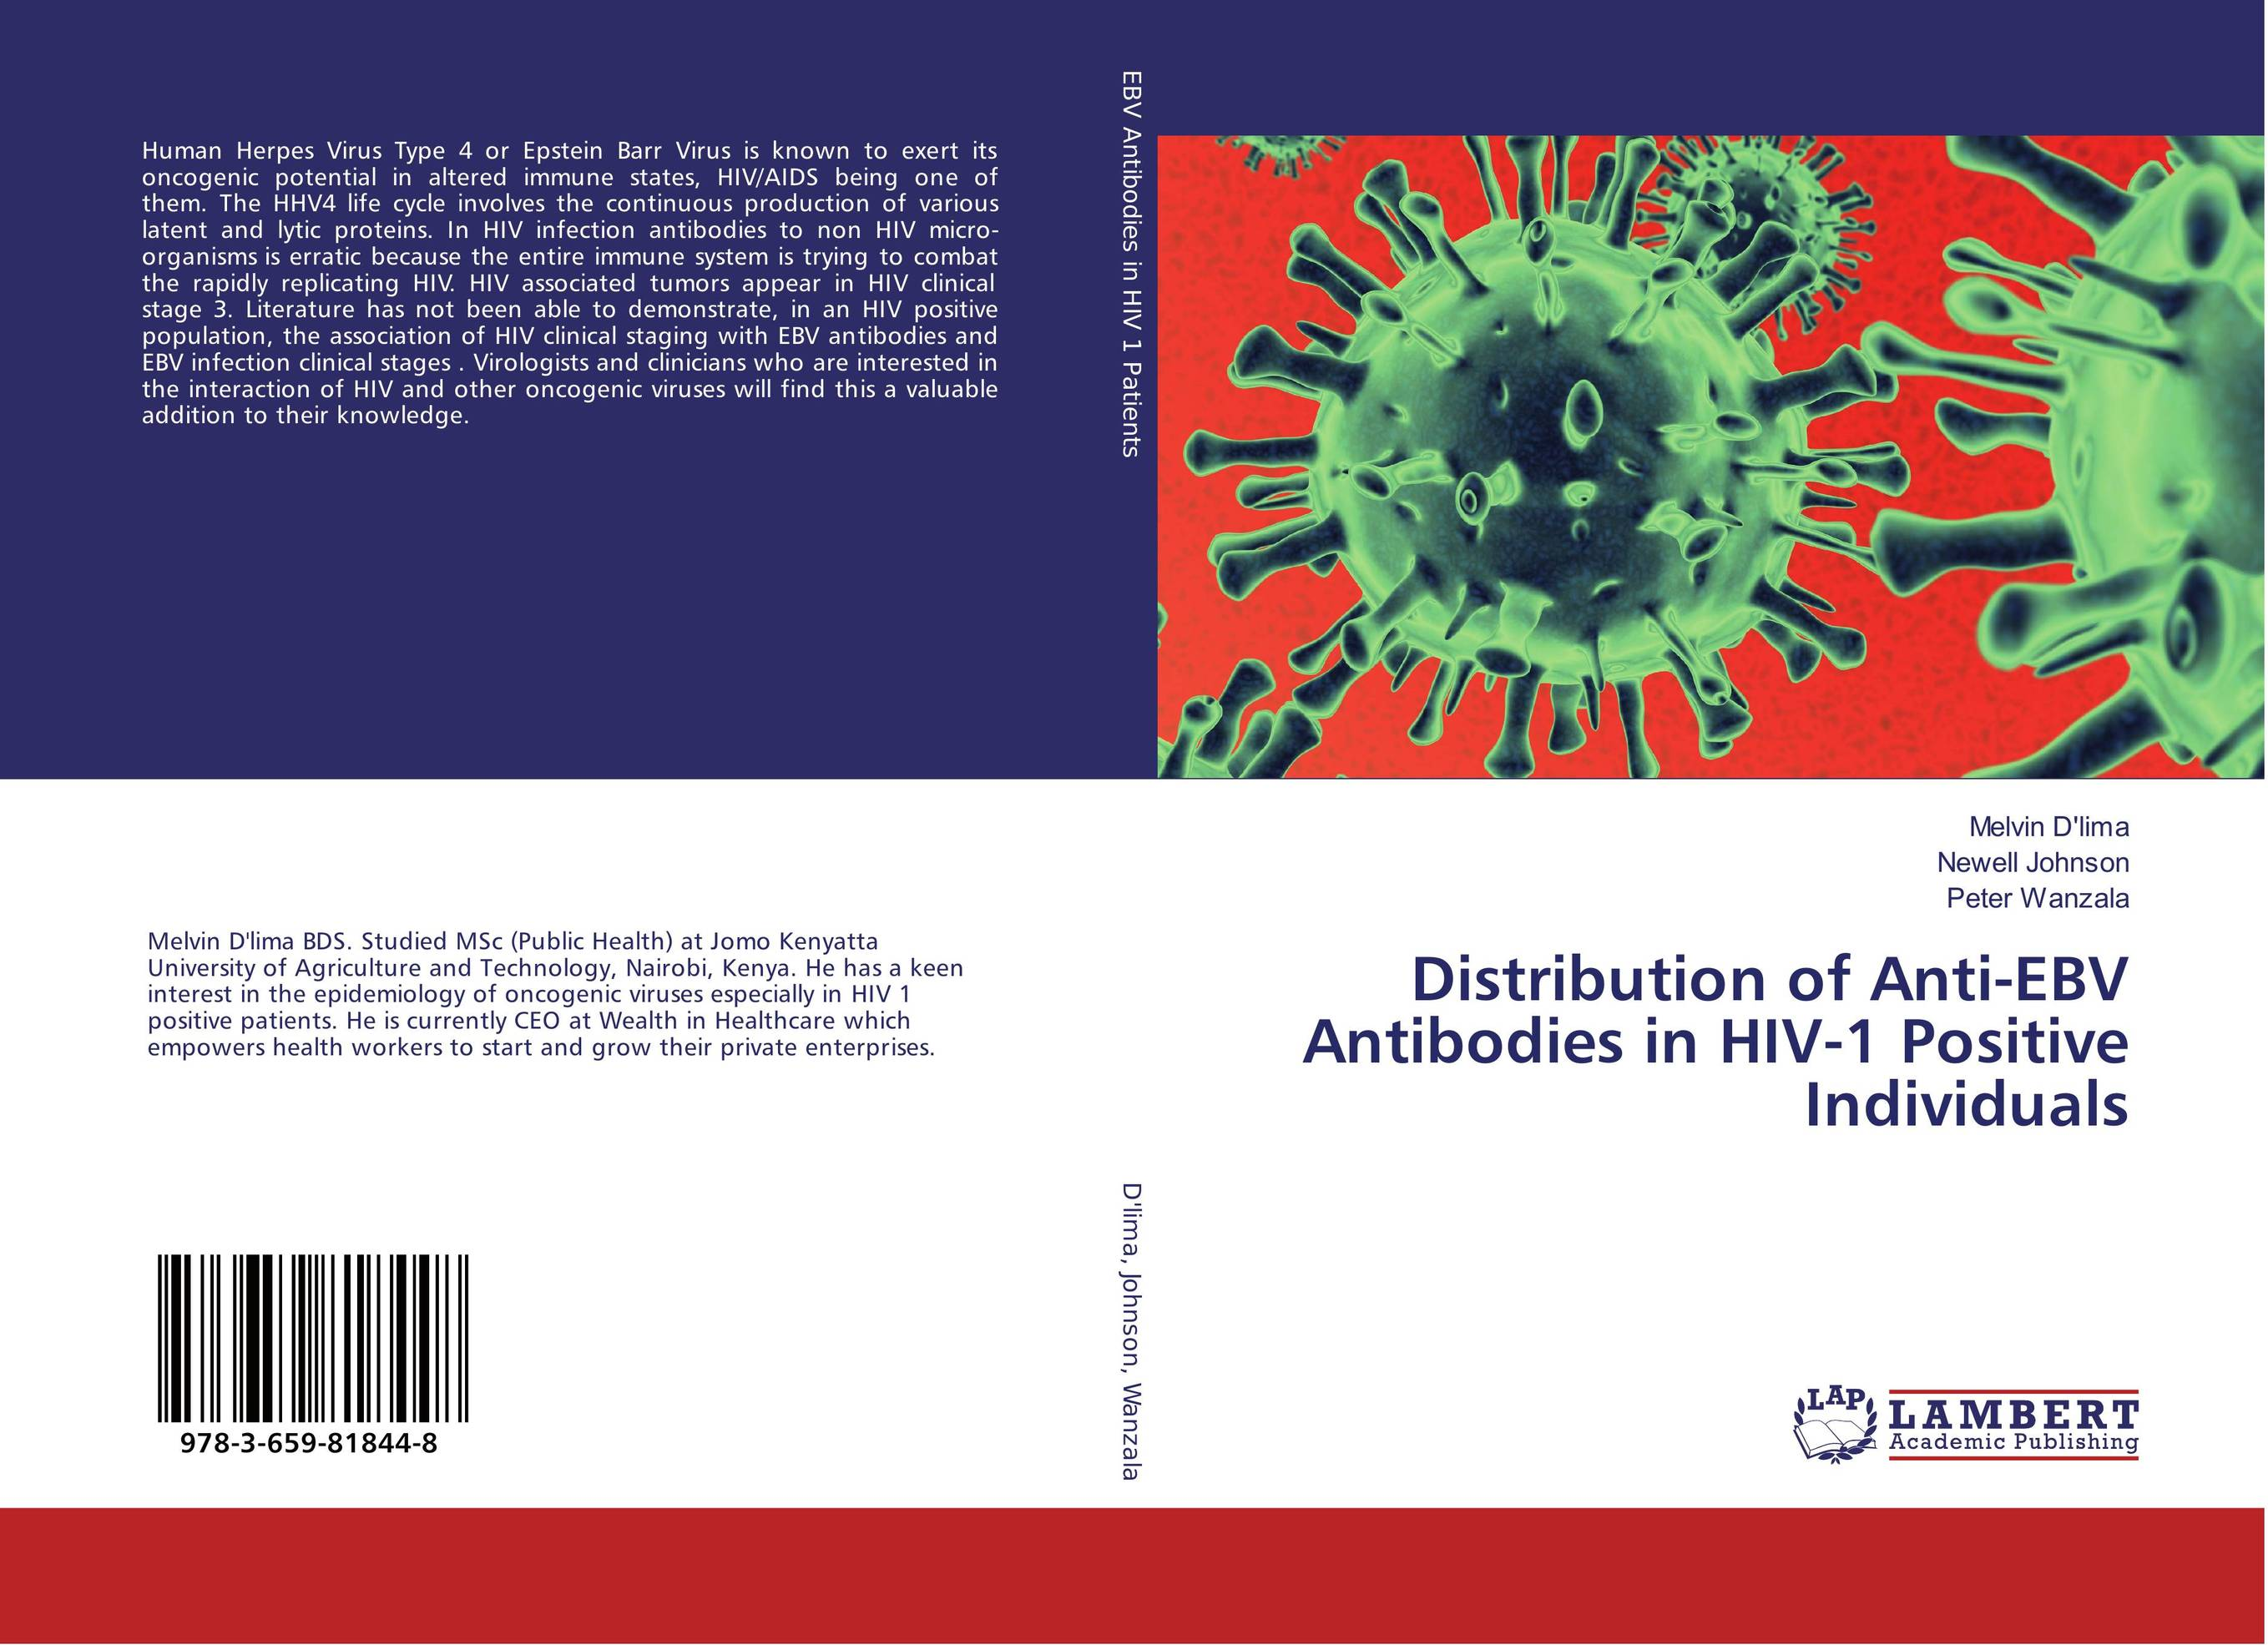 Distribution of Anti-EBV Antibodies in HIV-1 Positive Individuals mycobacteremia and hiv infection